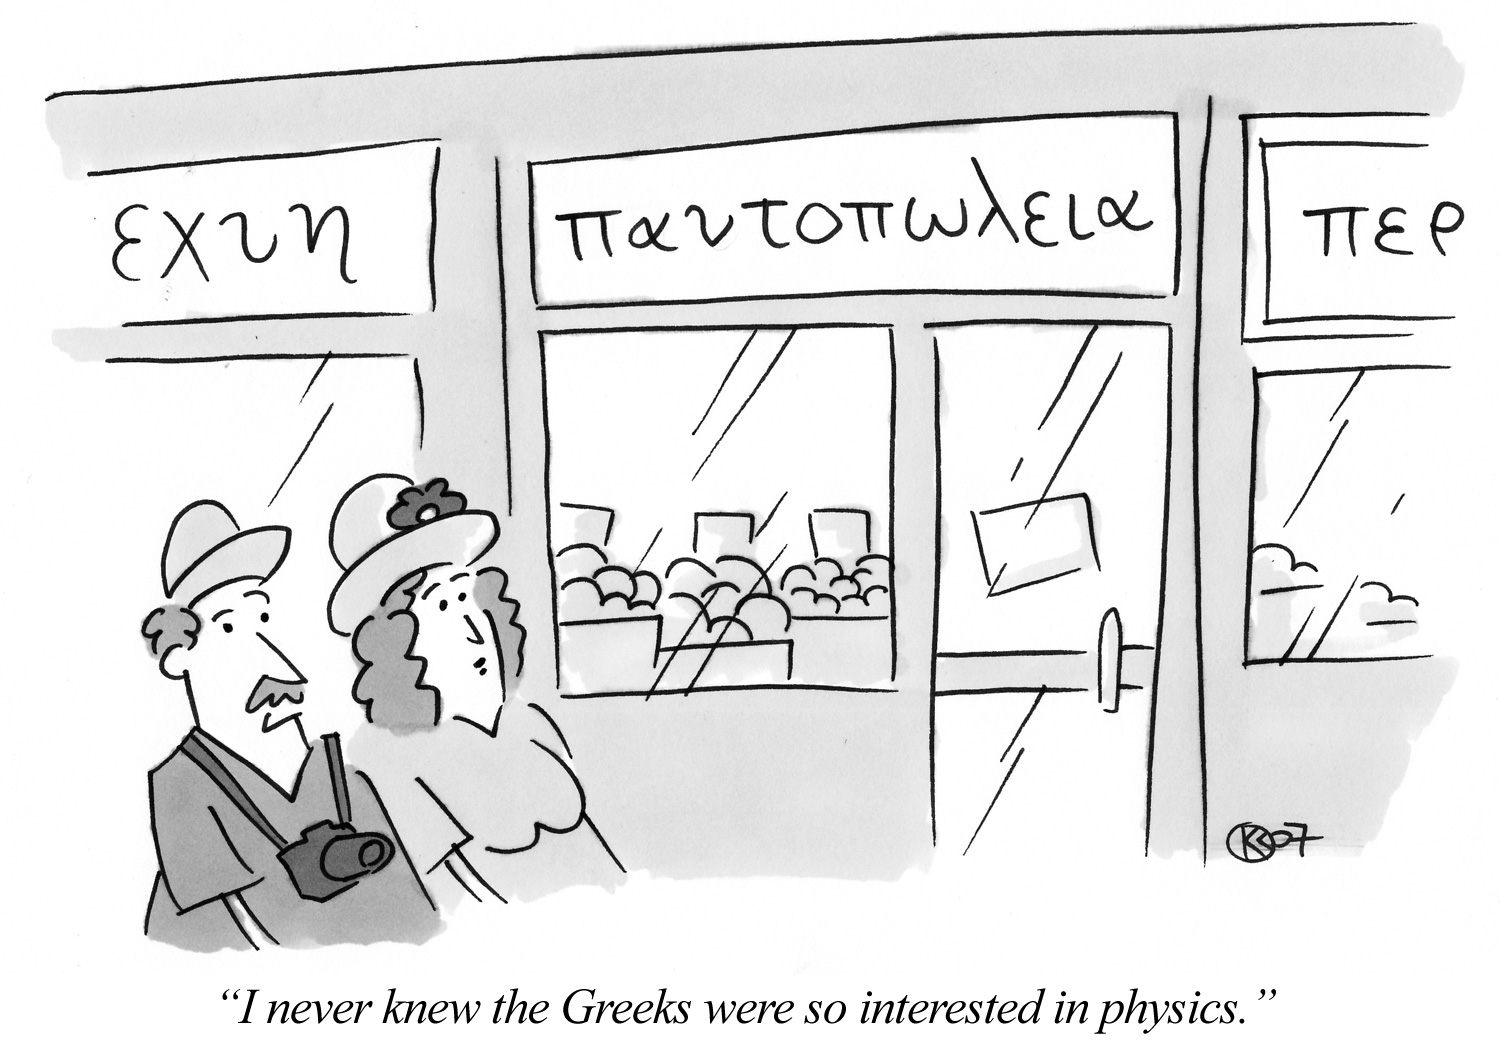 I never knew the Greeks were so interested in physics.